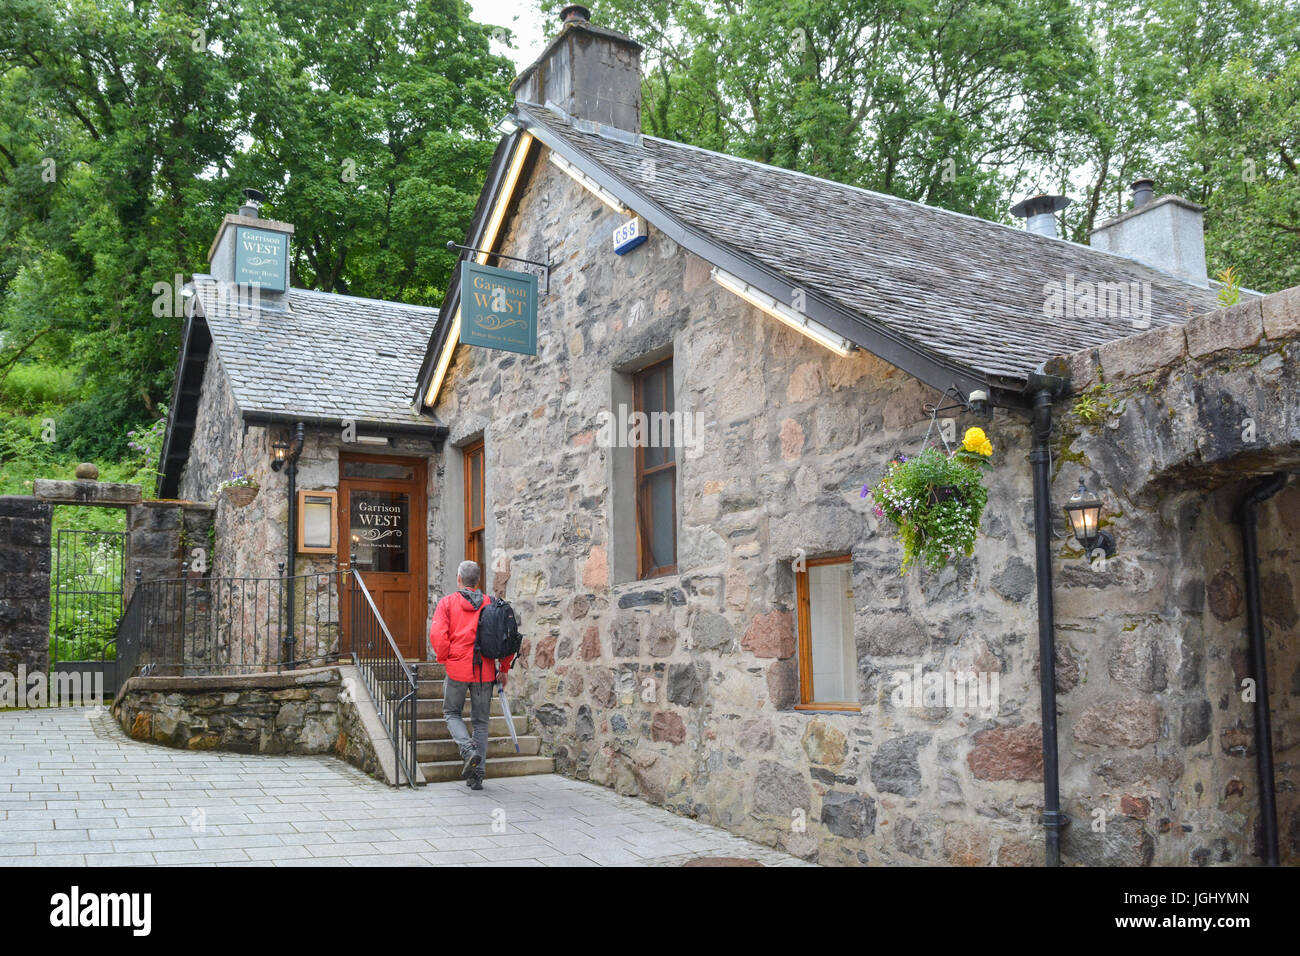 Garrison West pub and restaurant (part of the Do Drop Inns chain), Fort William, Scotland, UK - Stock Image